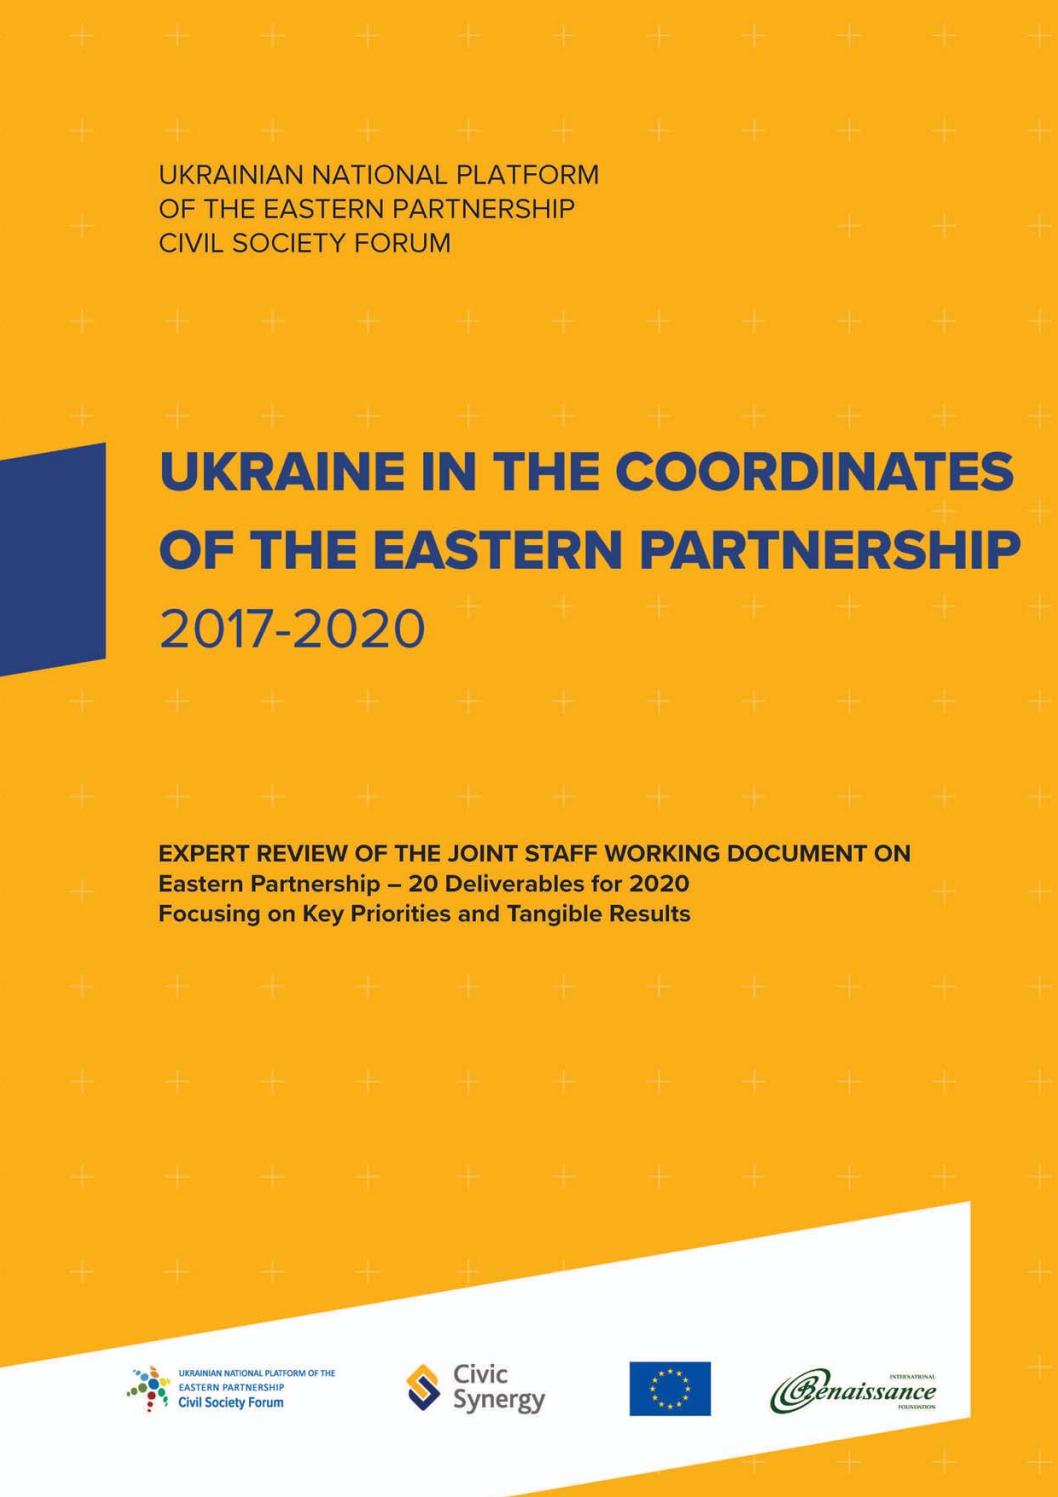 Ukraine in the Coordinates of the Eastern Partnership 2017